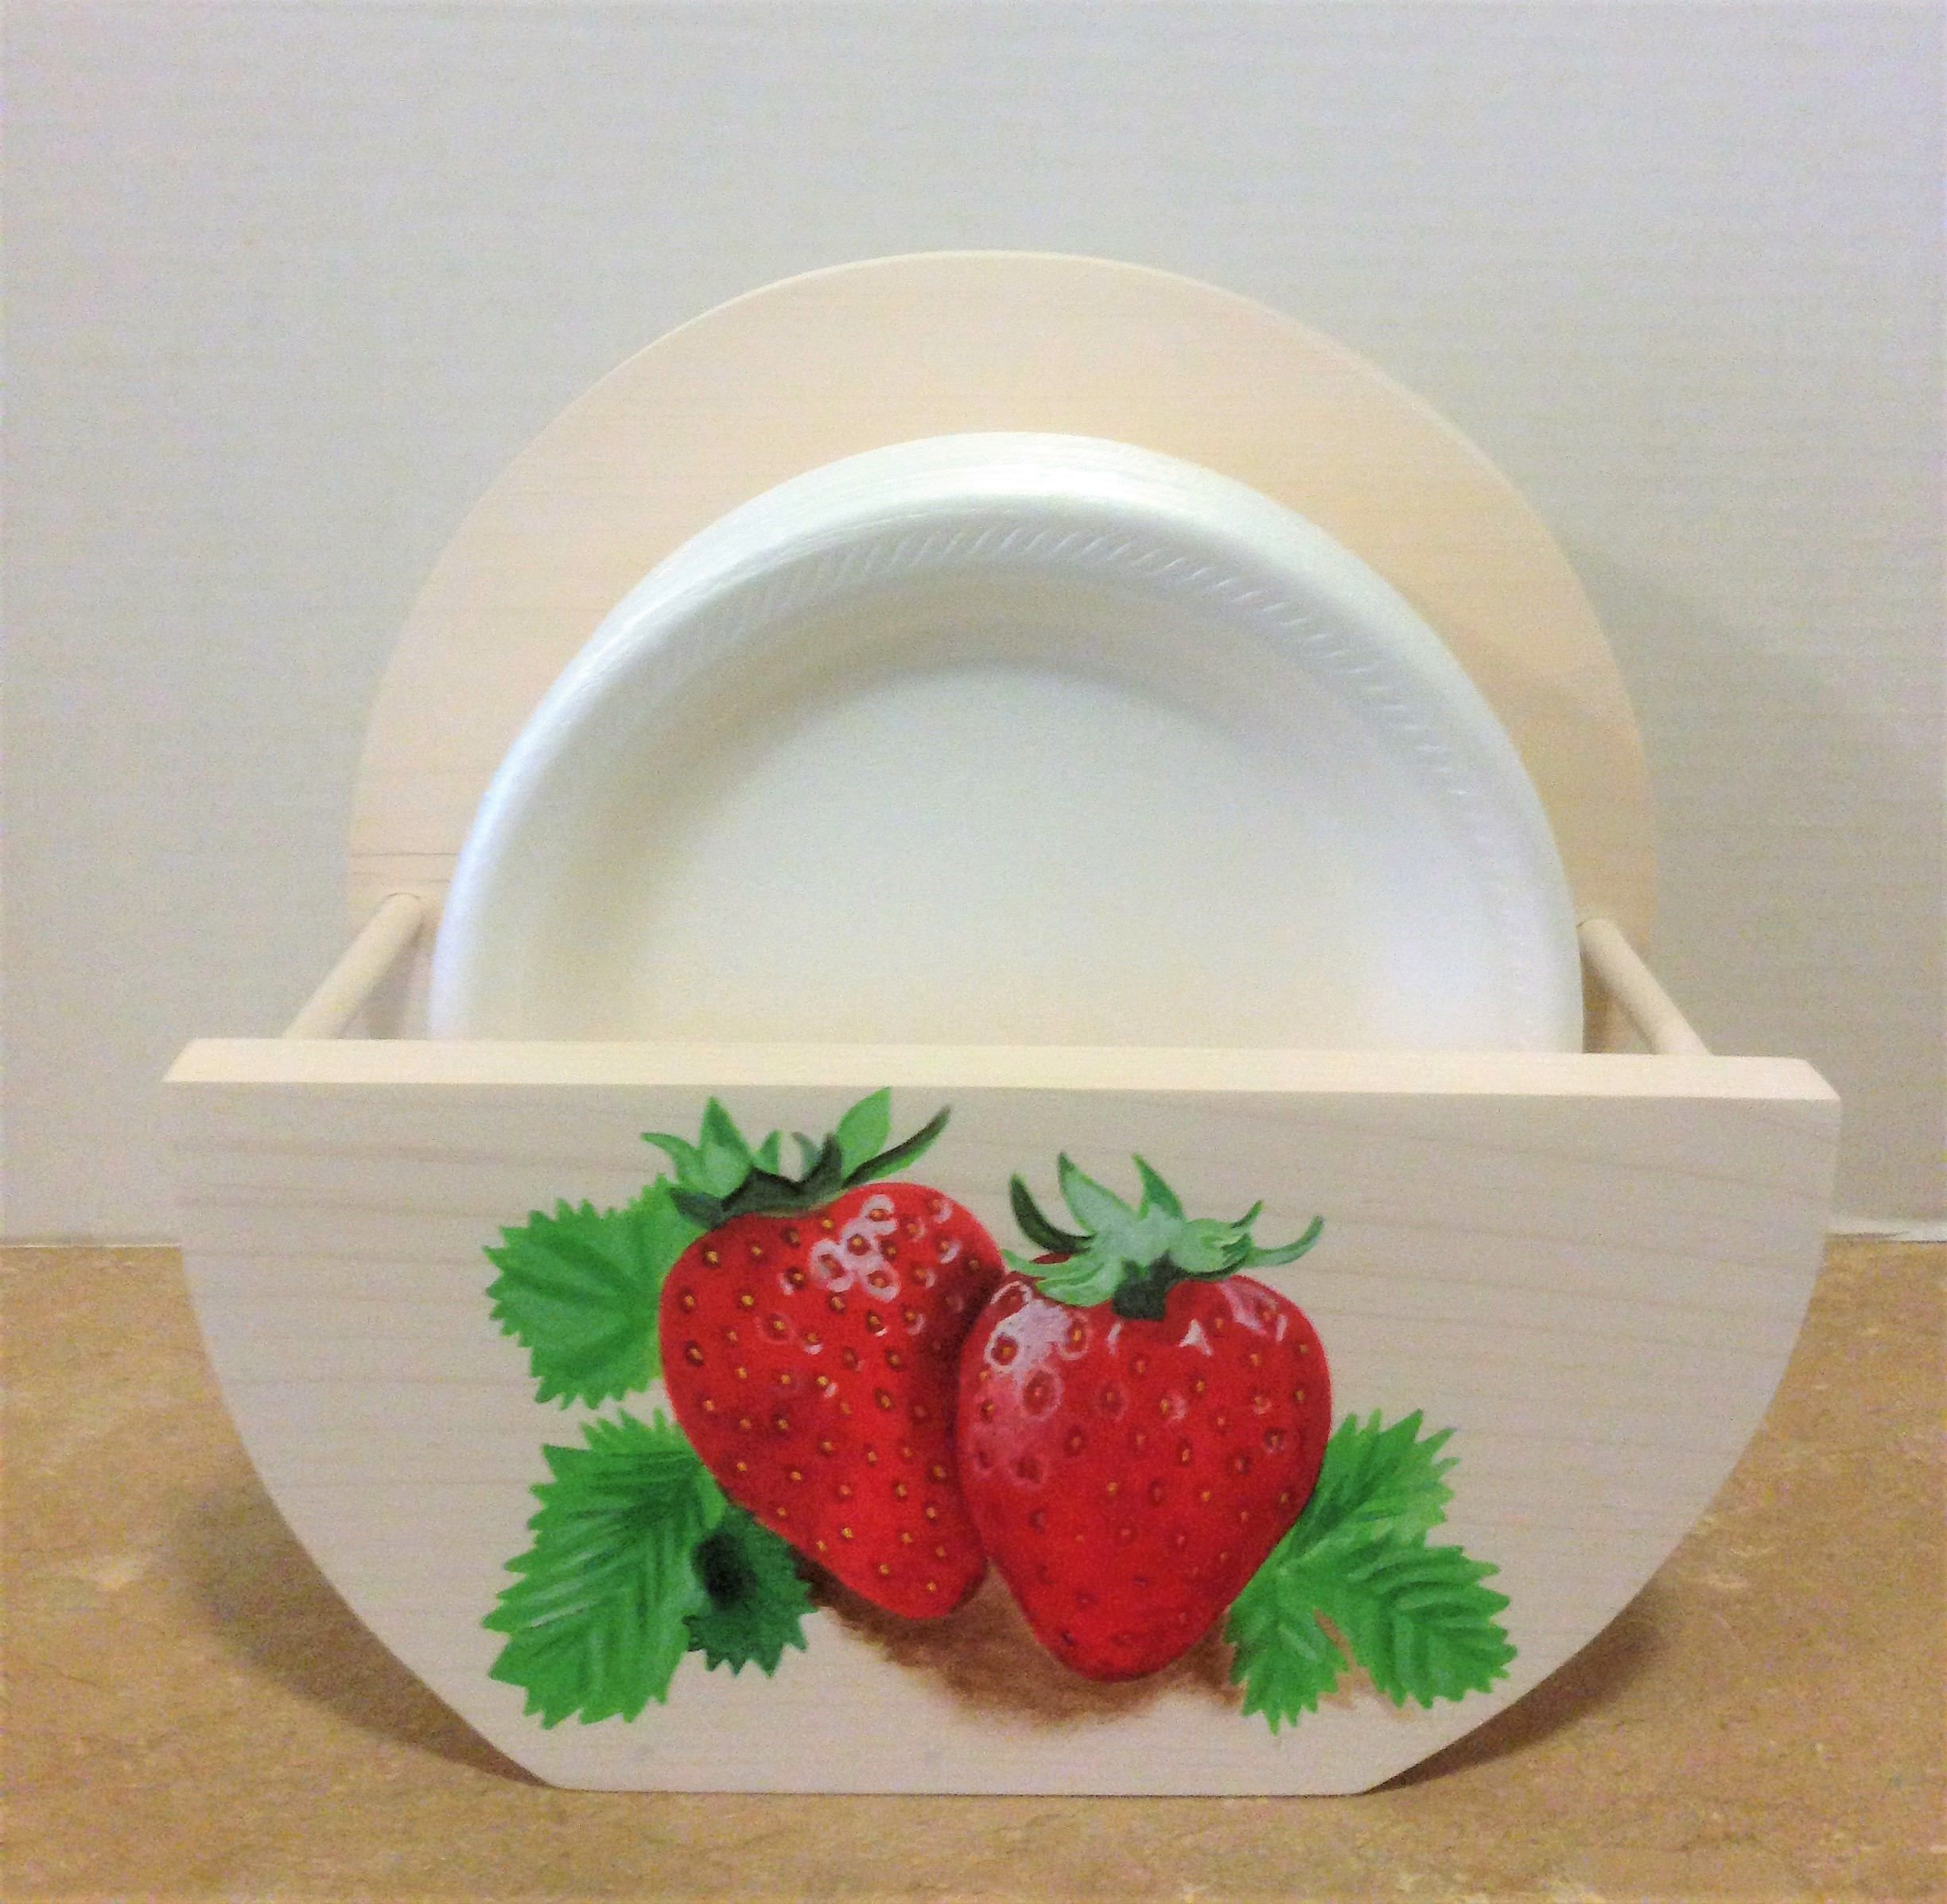 Paper Plate Holder Strawberry Decor Strawberry Kitchen Holder for plates Strawberries & Paper Plate Holder Strawberry Decor Strawberry Kitchen Holder for ...